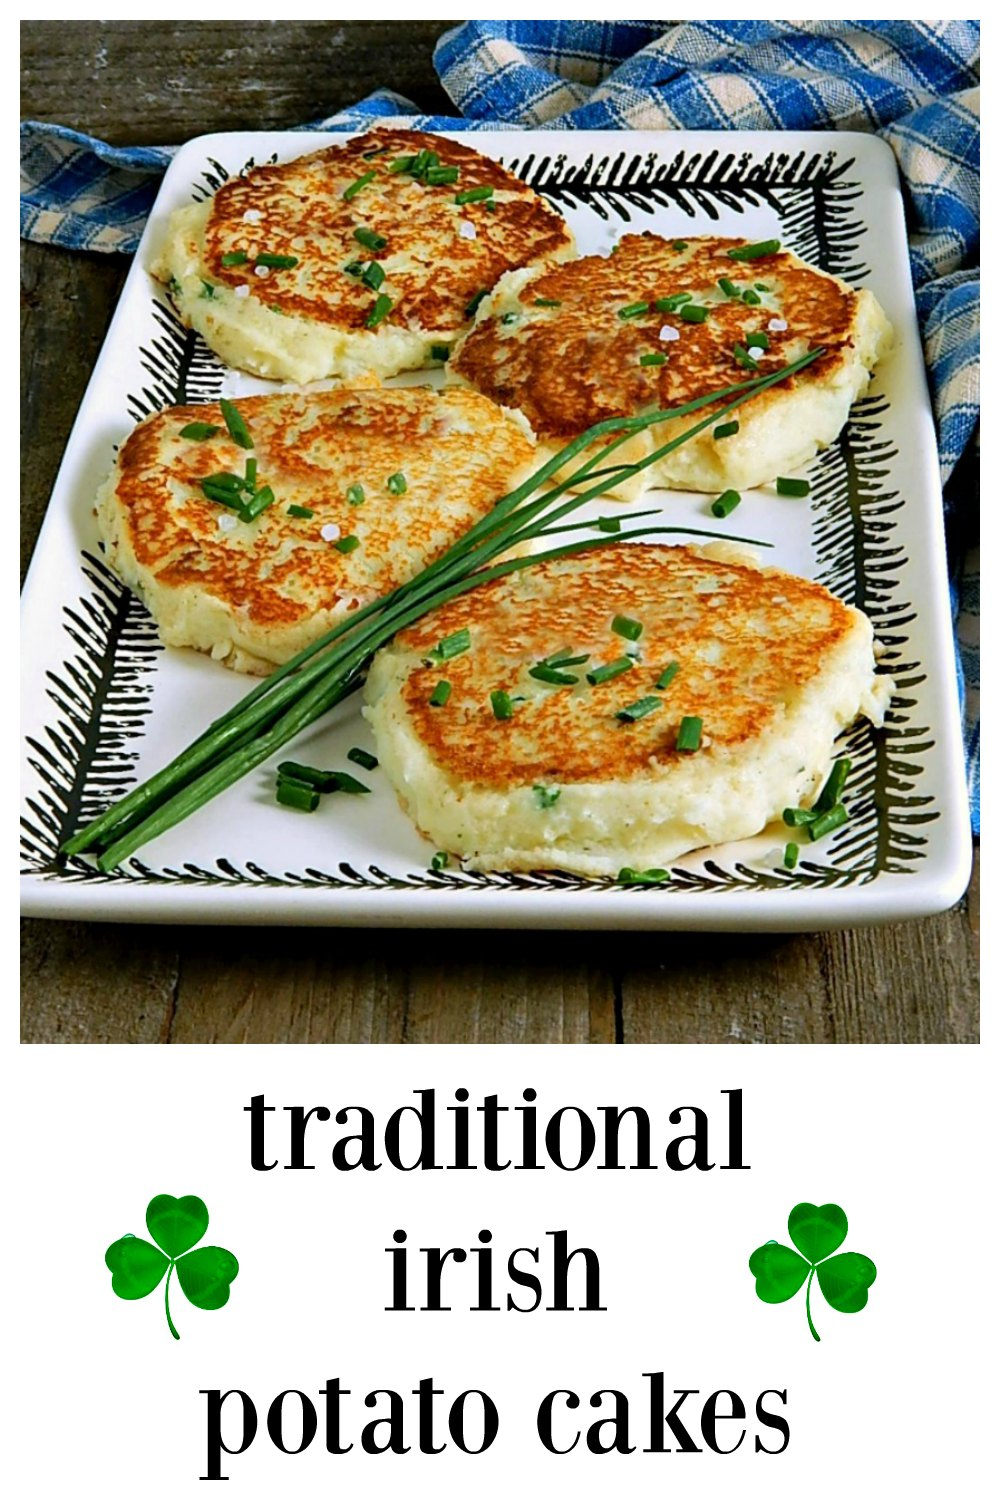 If there is anything better than mashed potatoes, it has to be Traditional Irish Potato Cakes! They're fab! Make them anytime you have leftover potatoes & instructions if youi want to start from scratch. #IrishPotatoCakes #PotatoCakes #LeftoverPotatoes #LeftoverPotatoes #Irish #PotatoRecipe #LeftoverMashedPotatoes